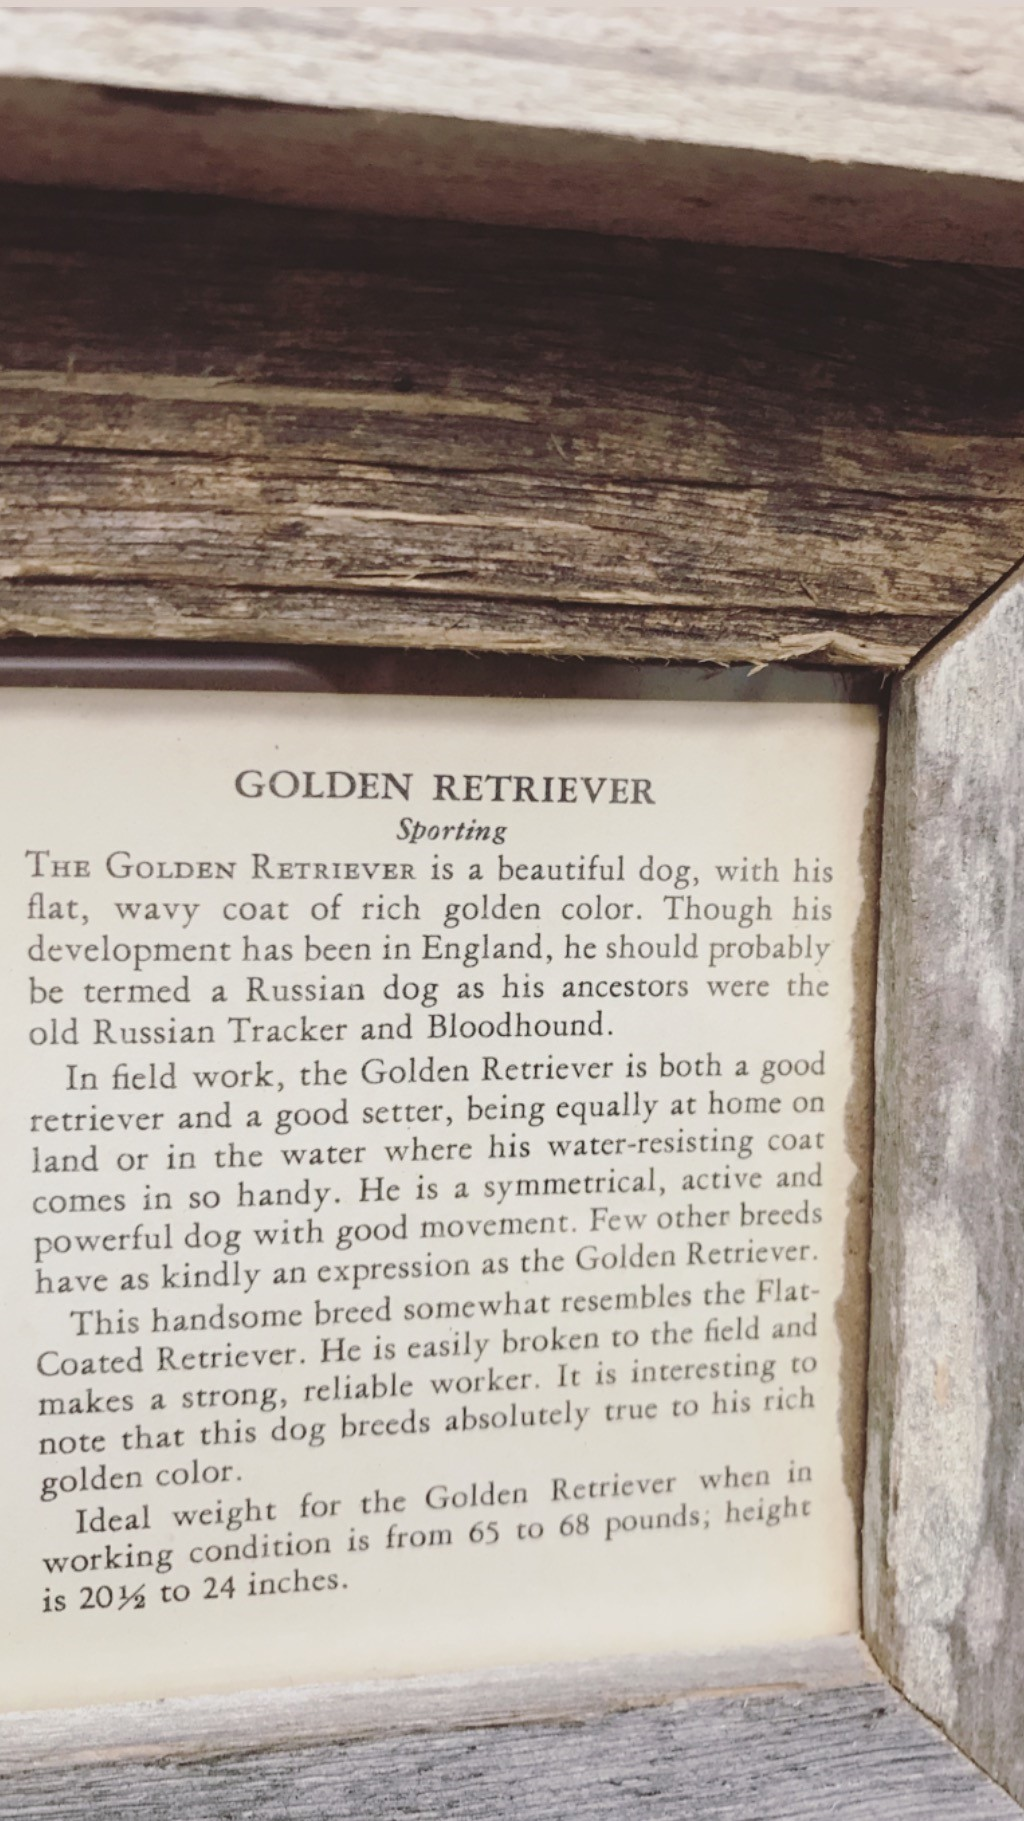 The Golden Retriever is in fact, a beautiful dog. - I love the little history lesson here.